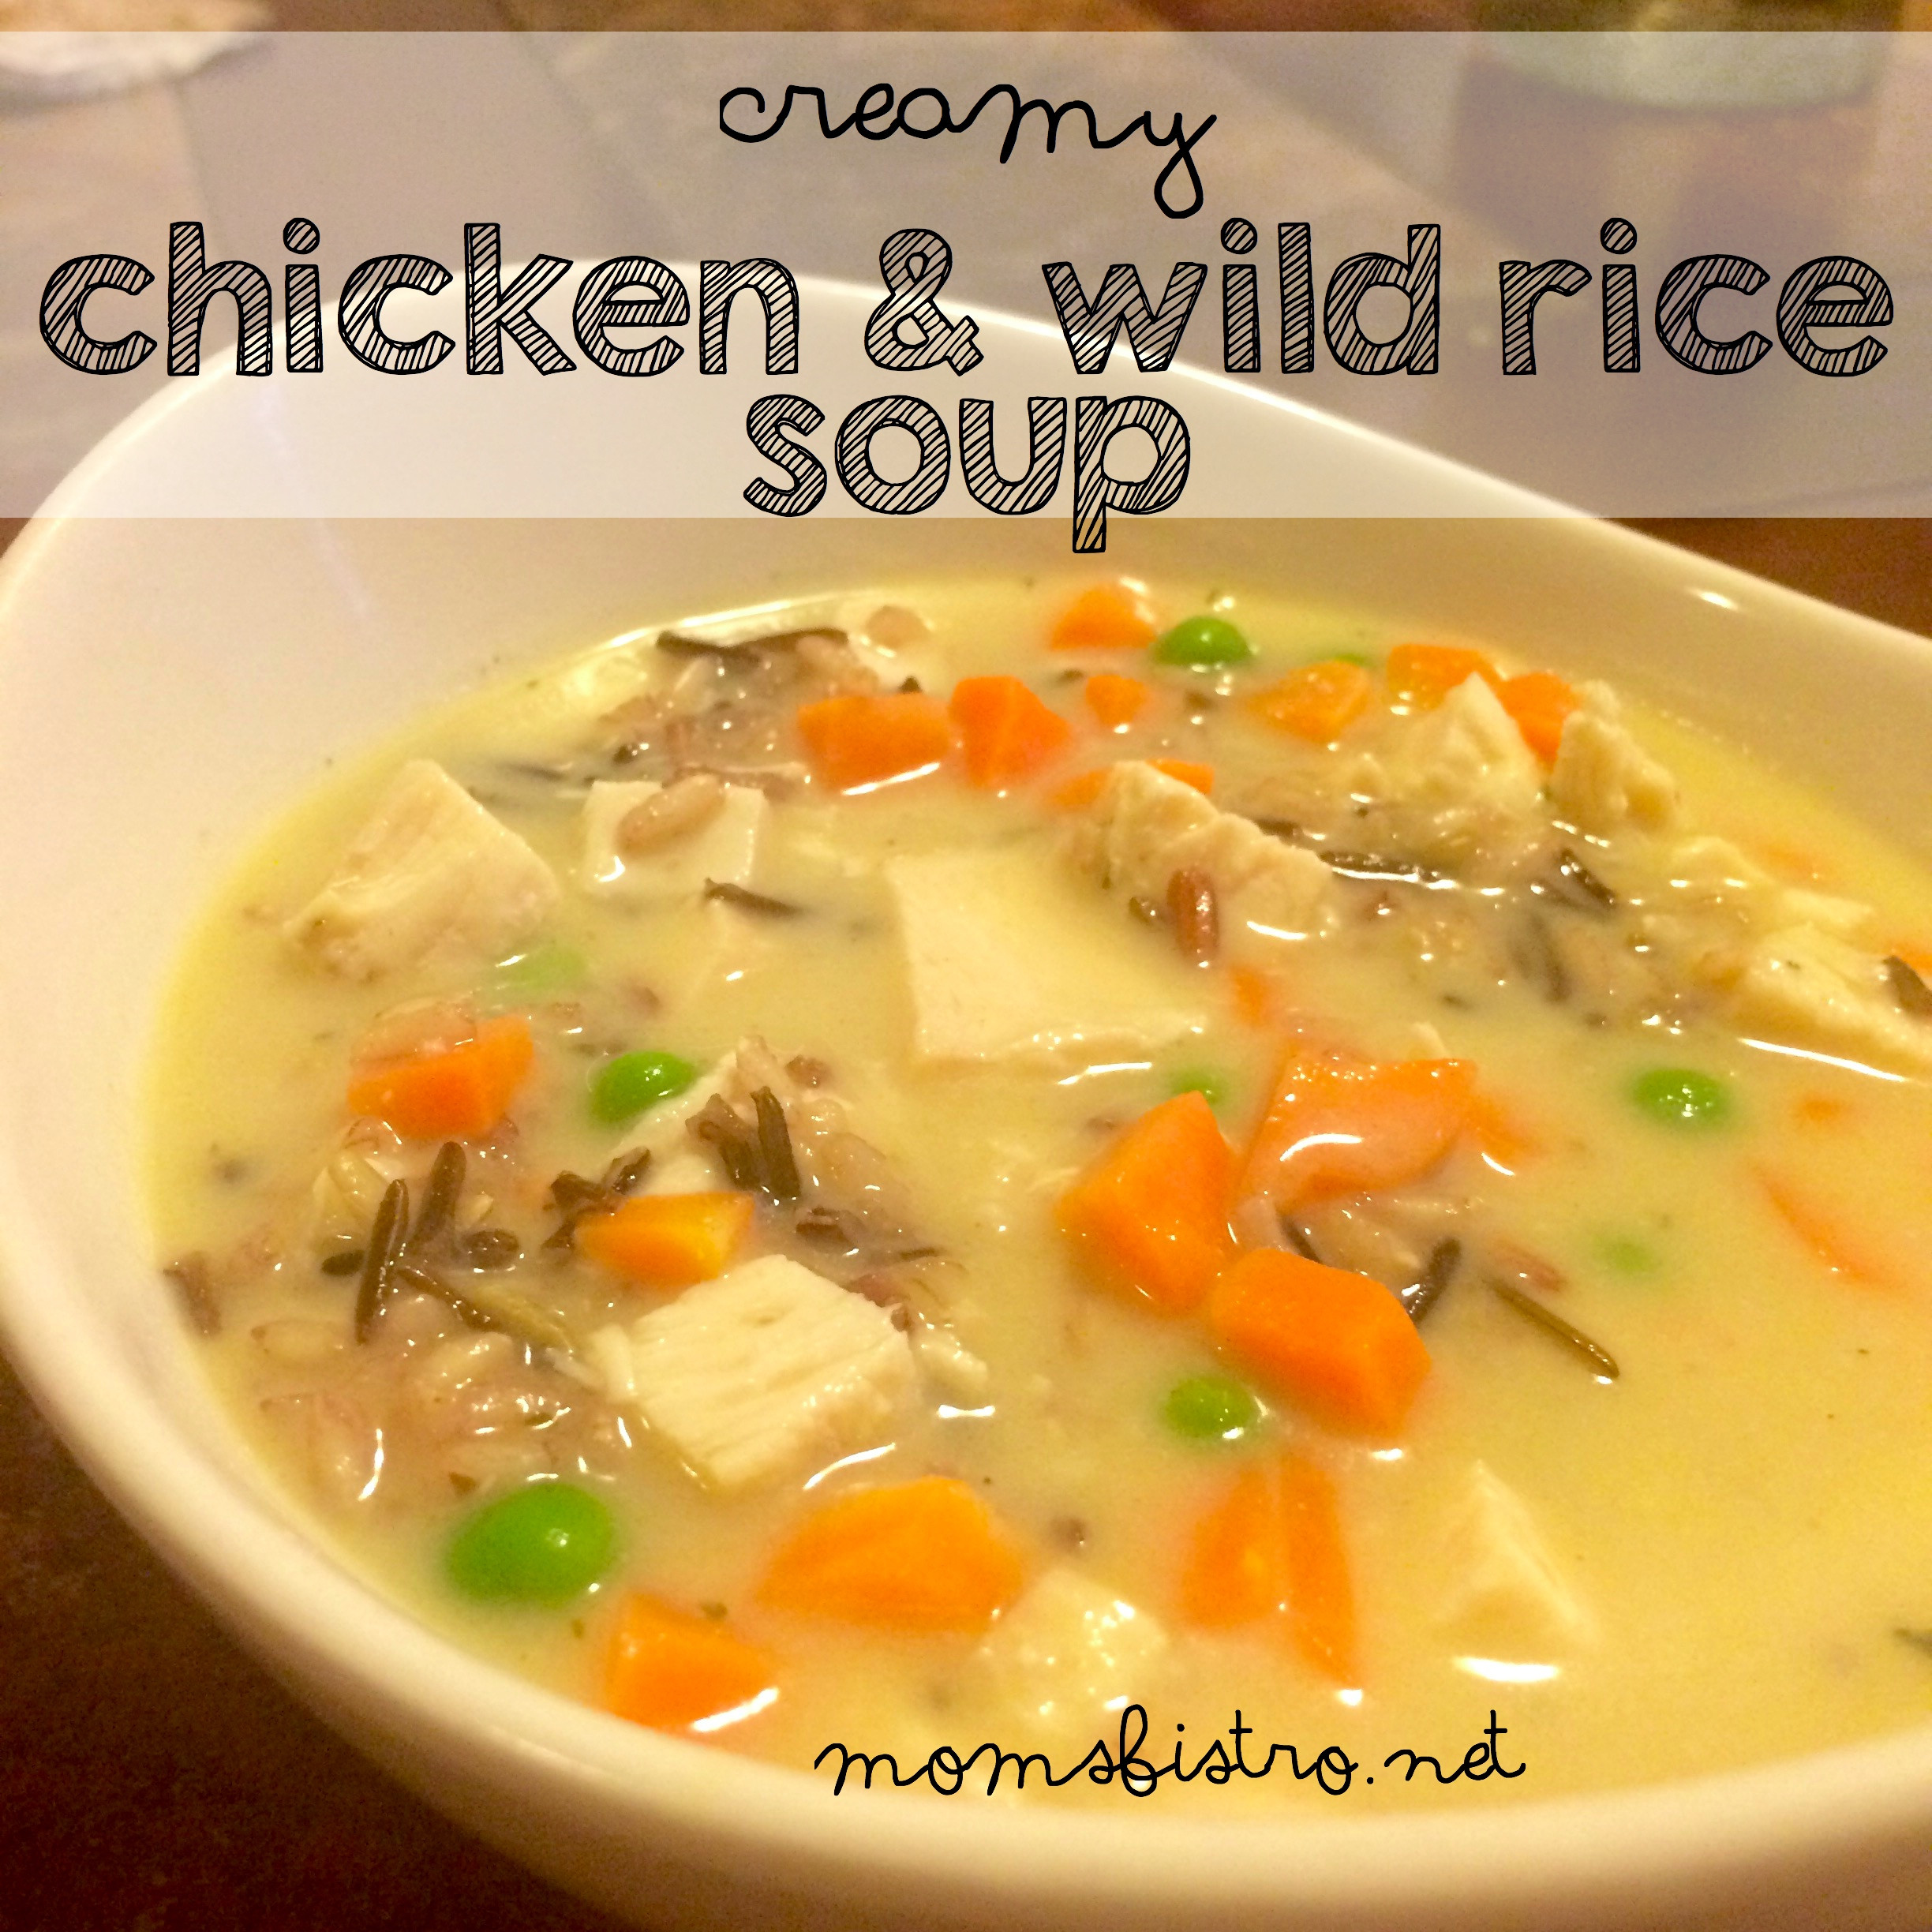 Chicken Soup With Rice  A Cozy Fall Twist on Leftovers Ready In ly 20 Minutes